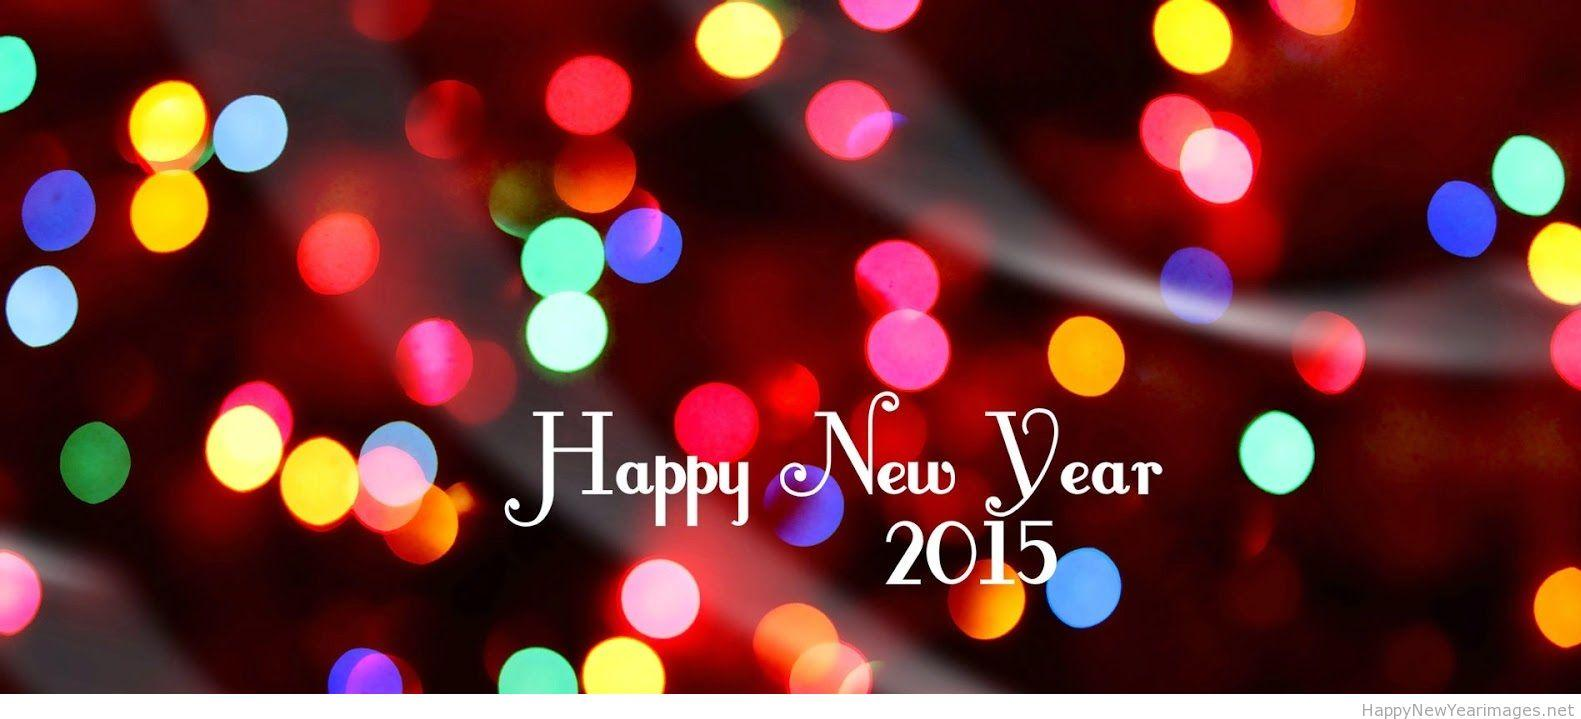 Wallpaper download new year 2015 - Happy New Year 2015 Lights Wallpaper